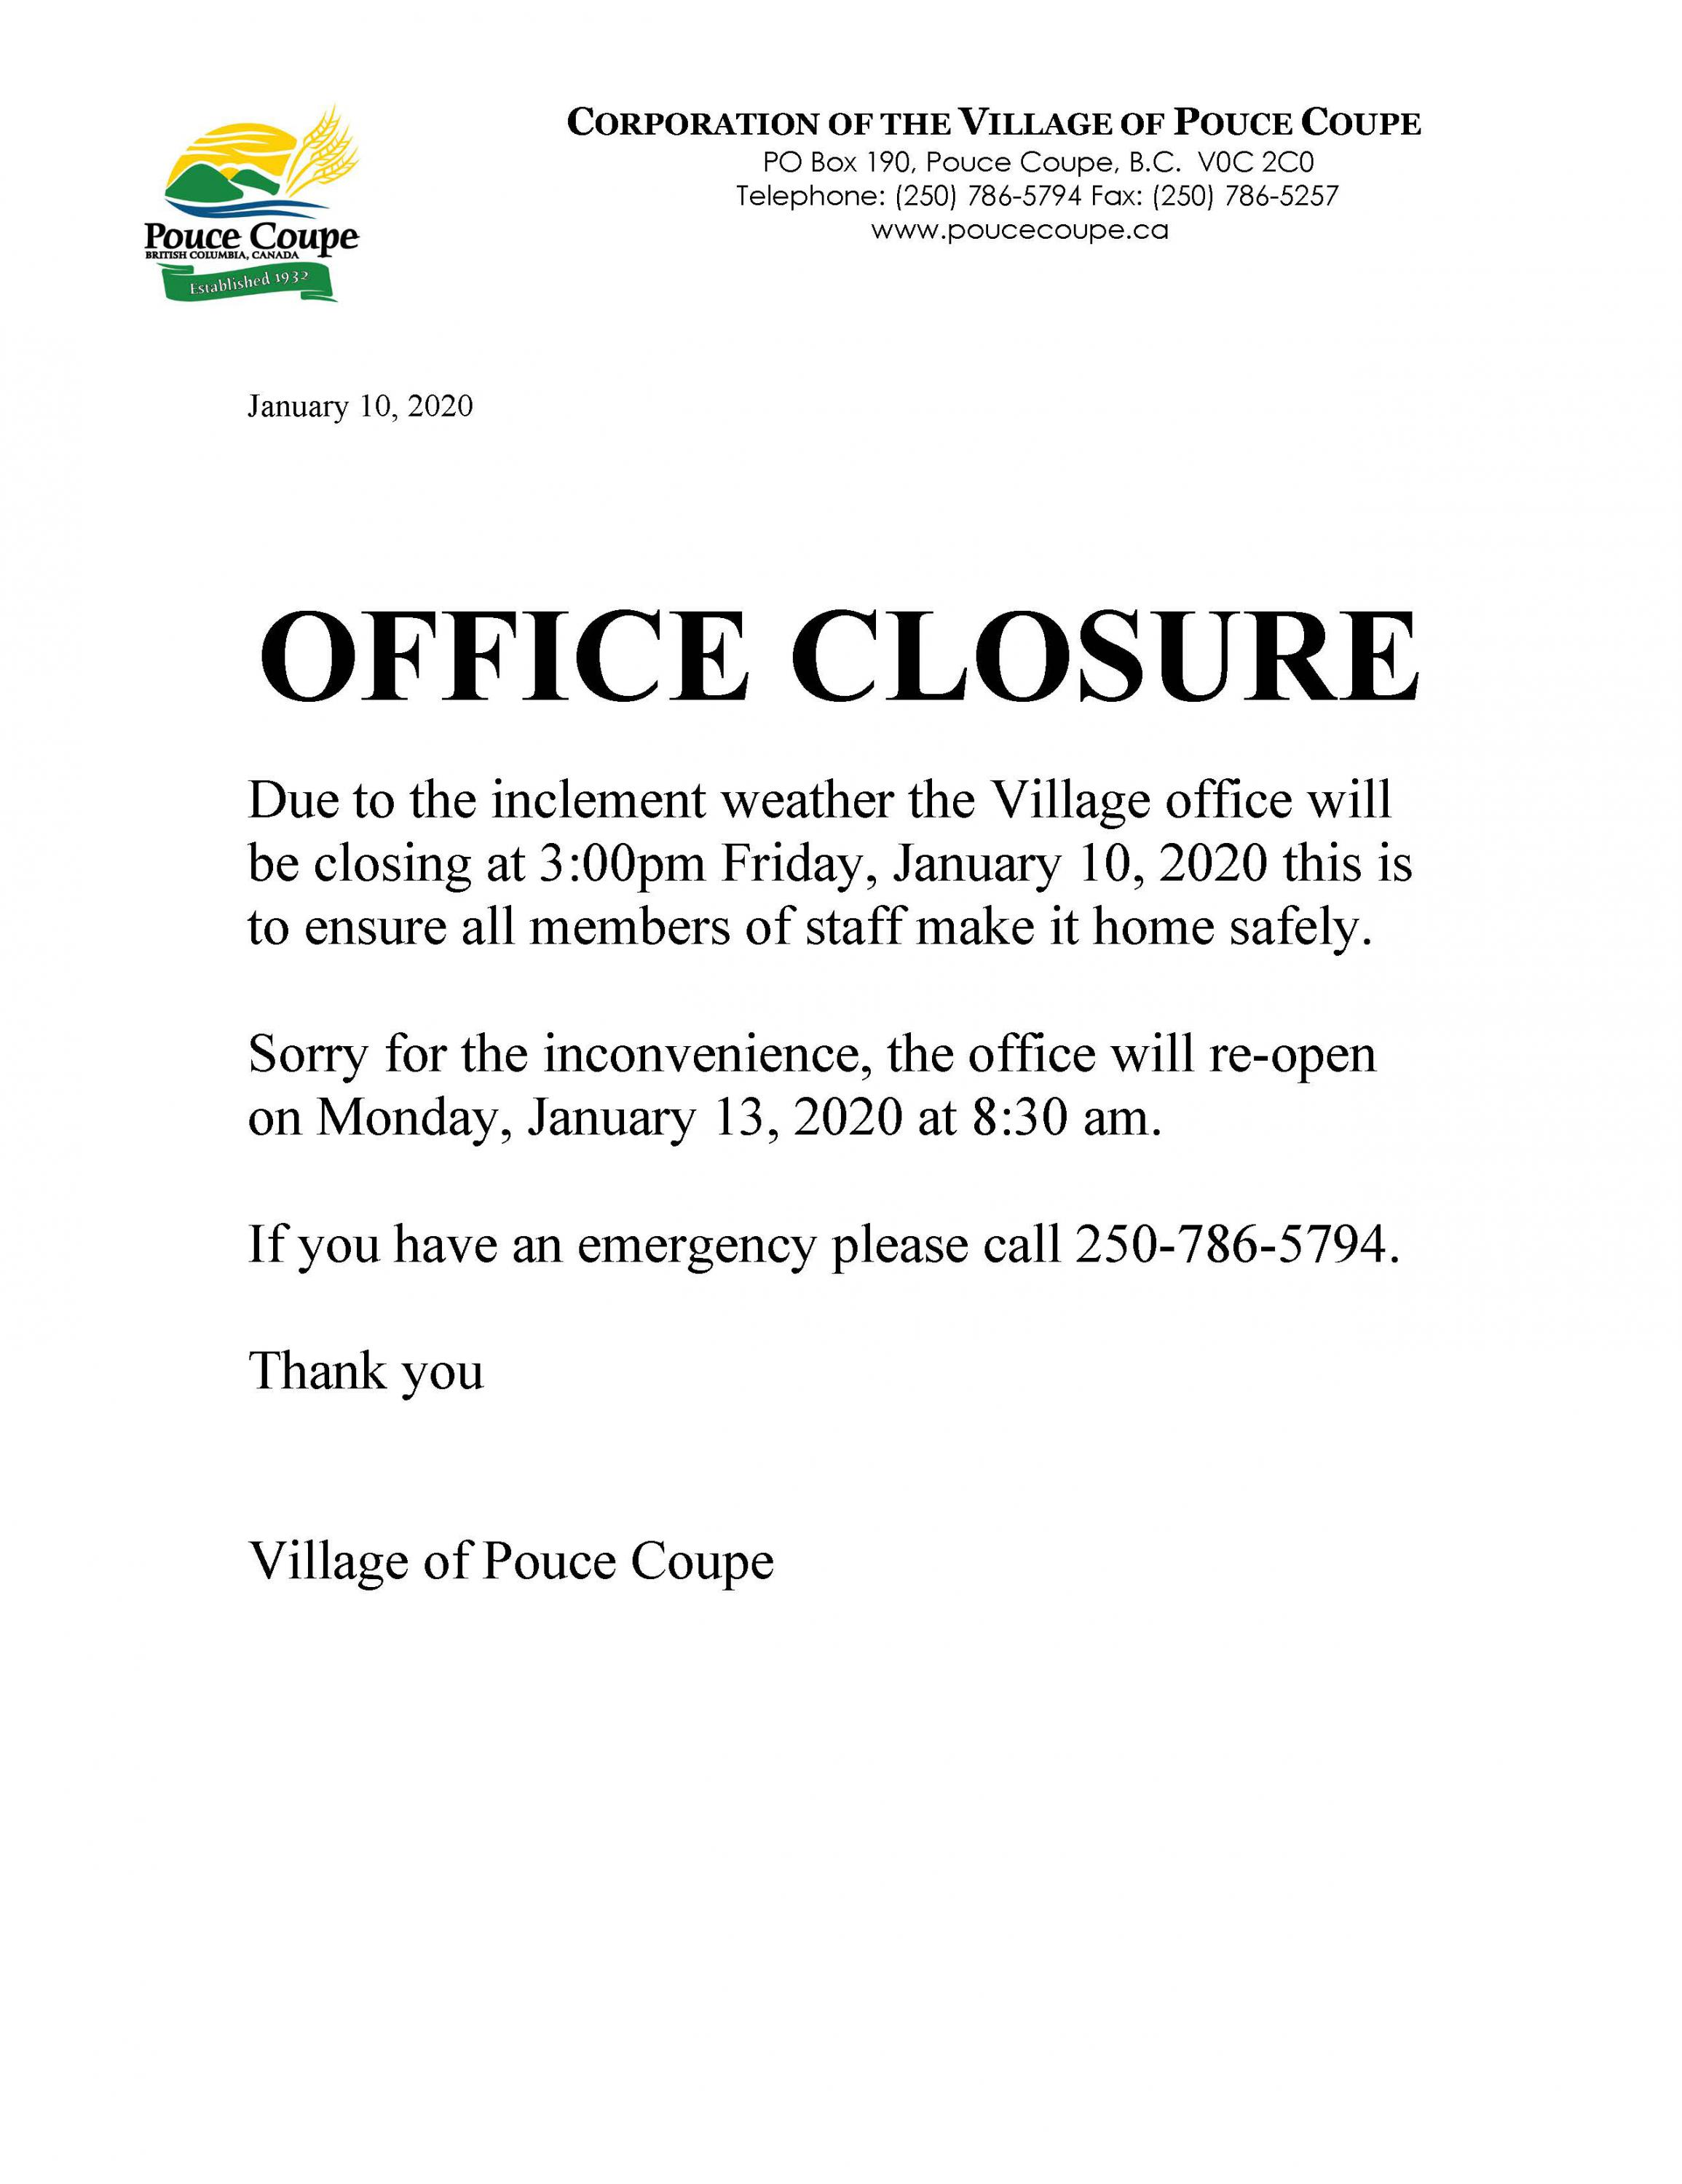 Snow Closure Friday January 10, 2020